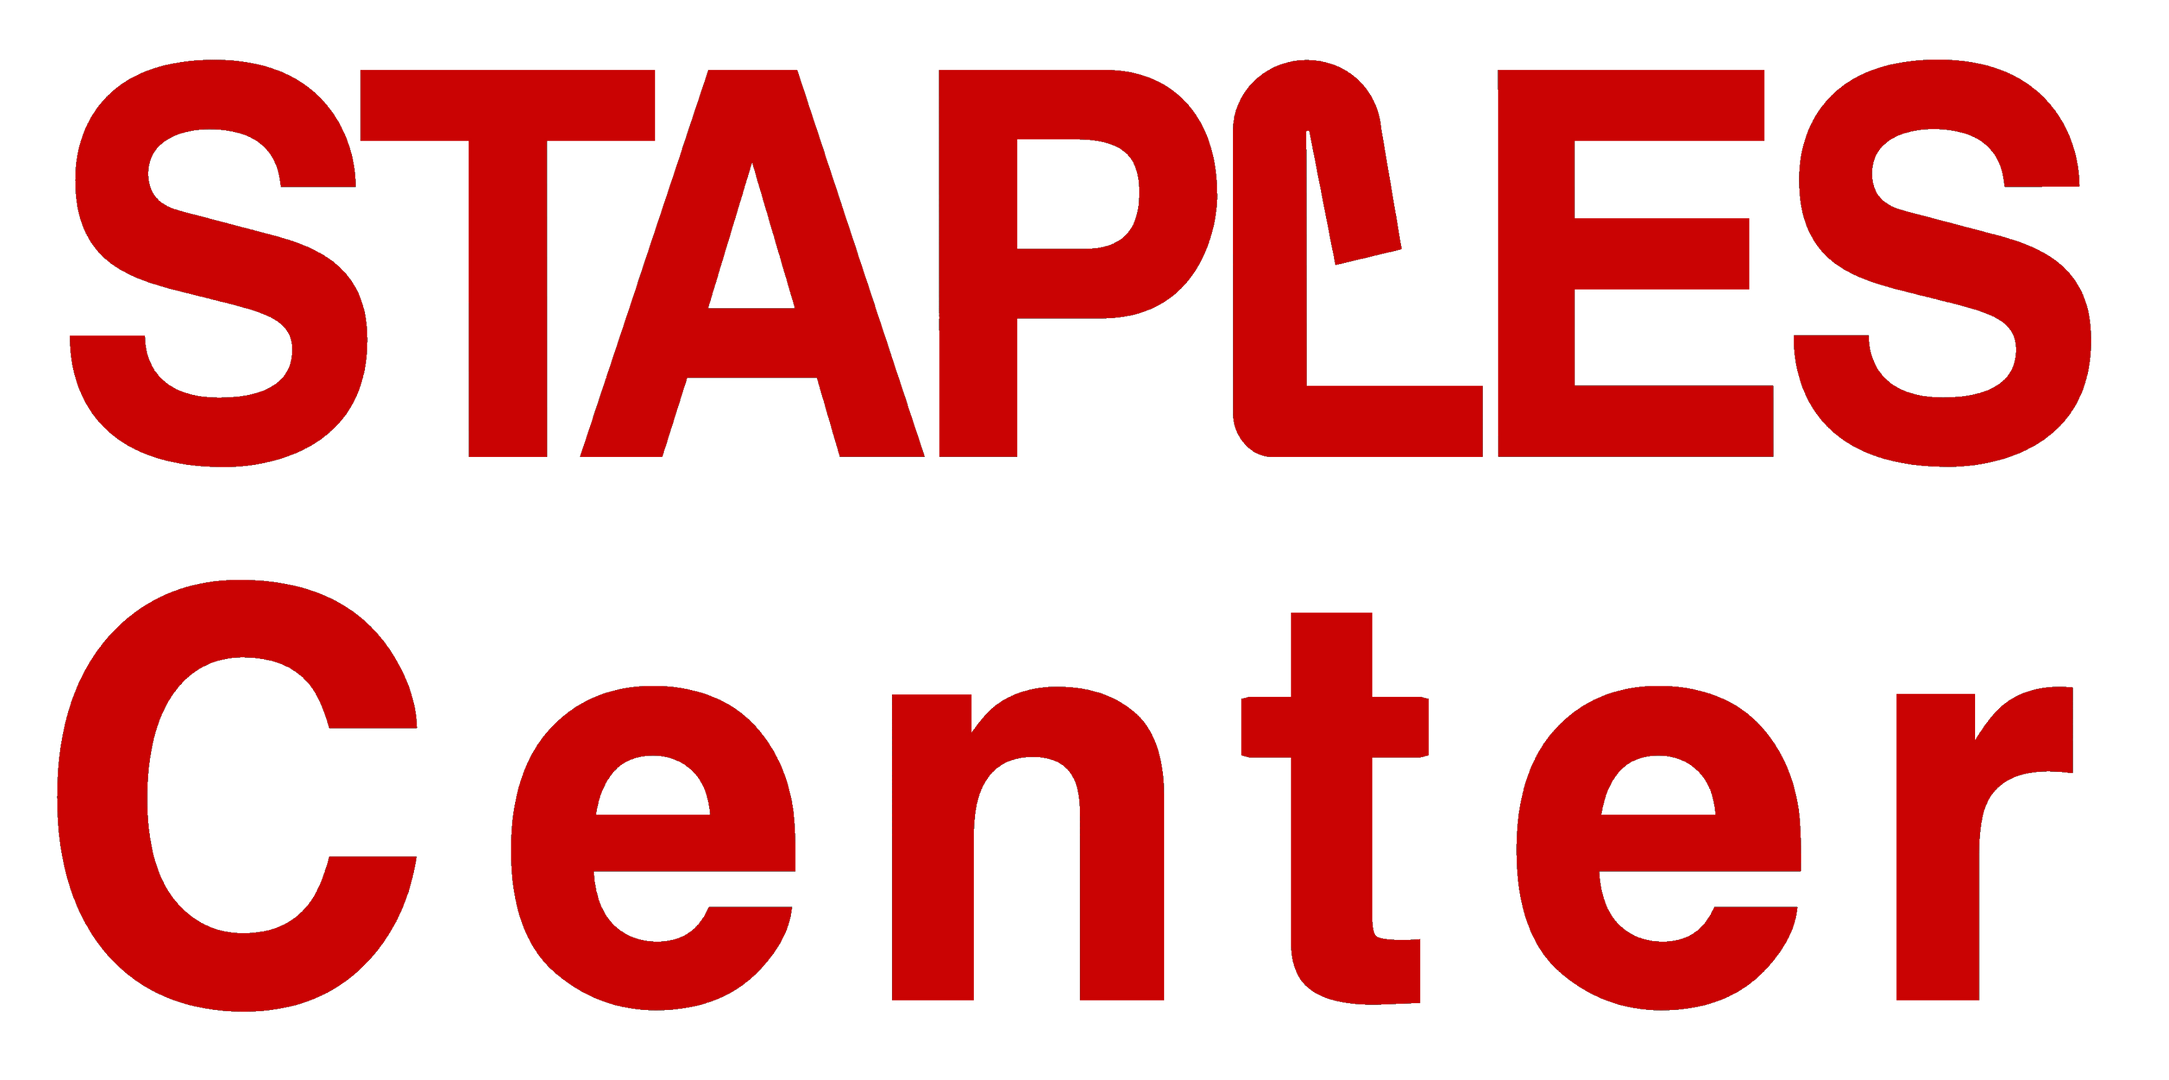 staples-clients.png